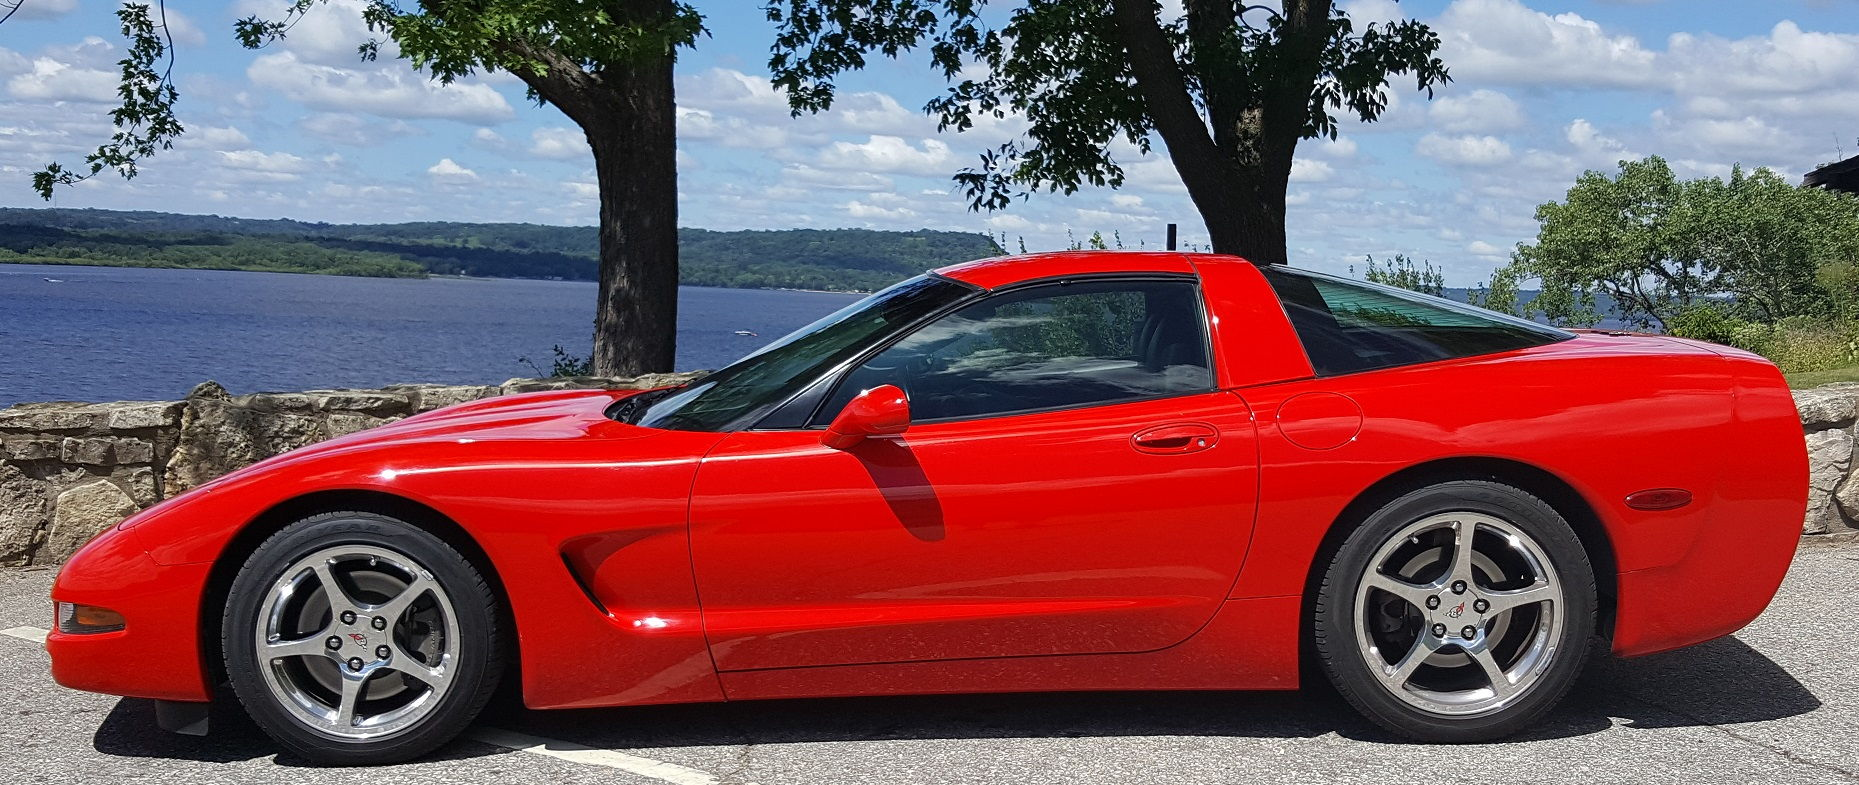 fs for sale 2004 corvette coupe torch red stock 50k. Black Bedroom Furniture Sets. Home Design Ideas